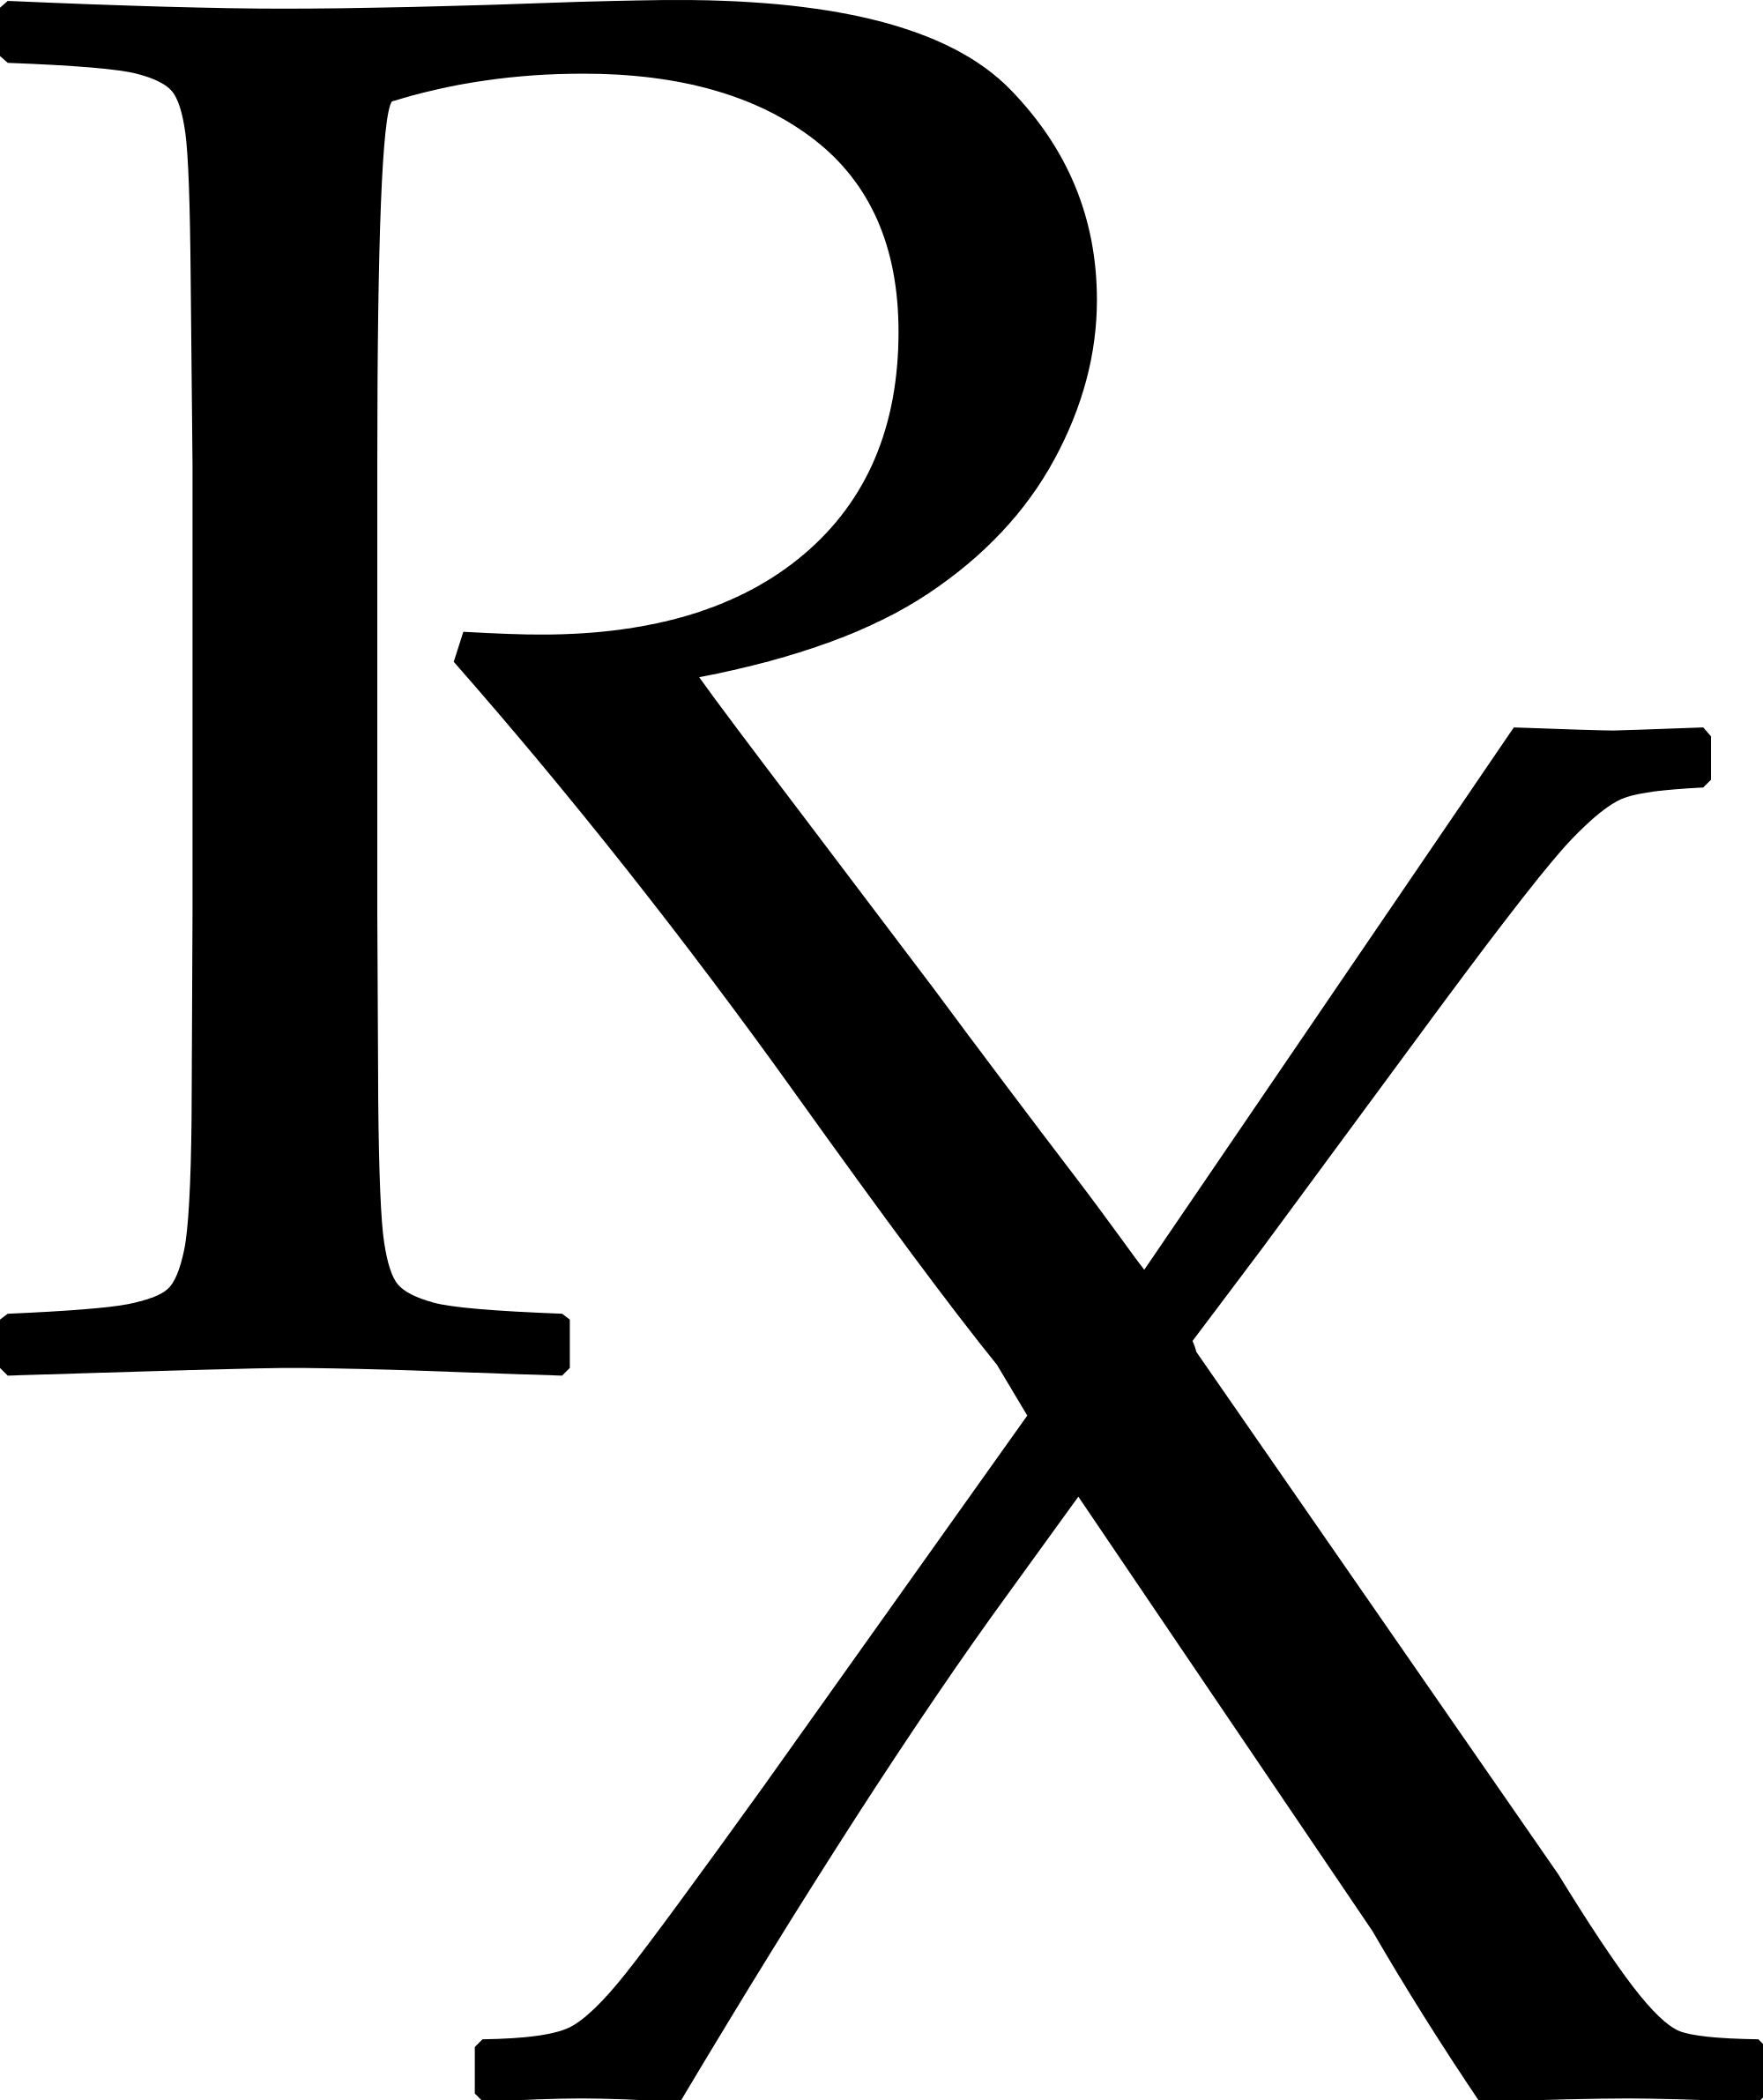 What is a png used for. File pharmacy rx symbol